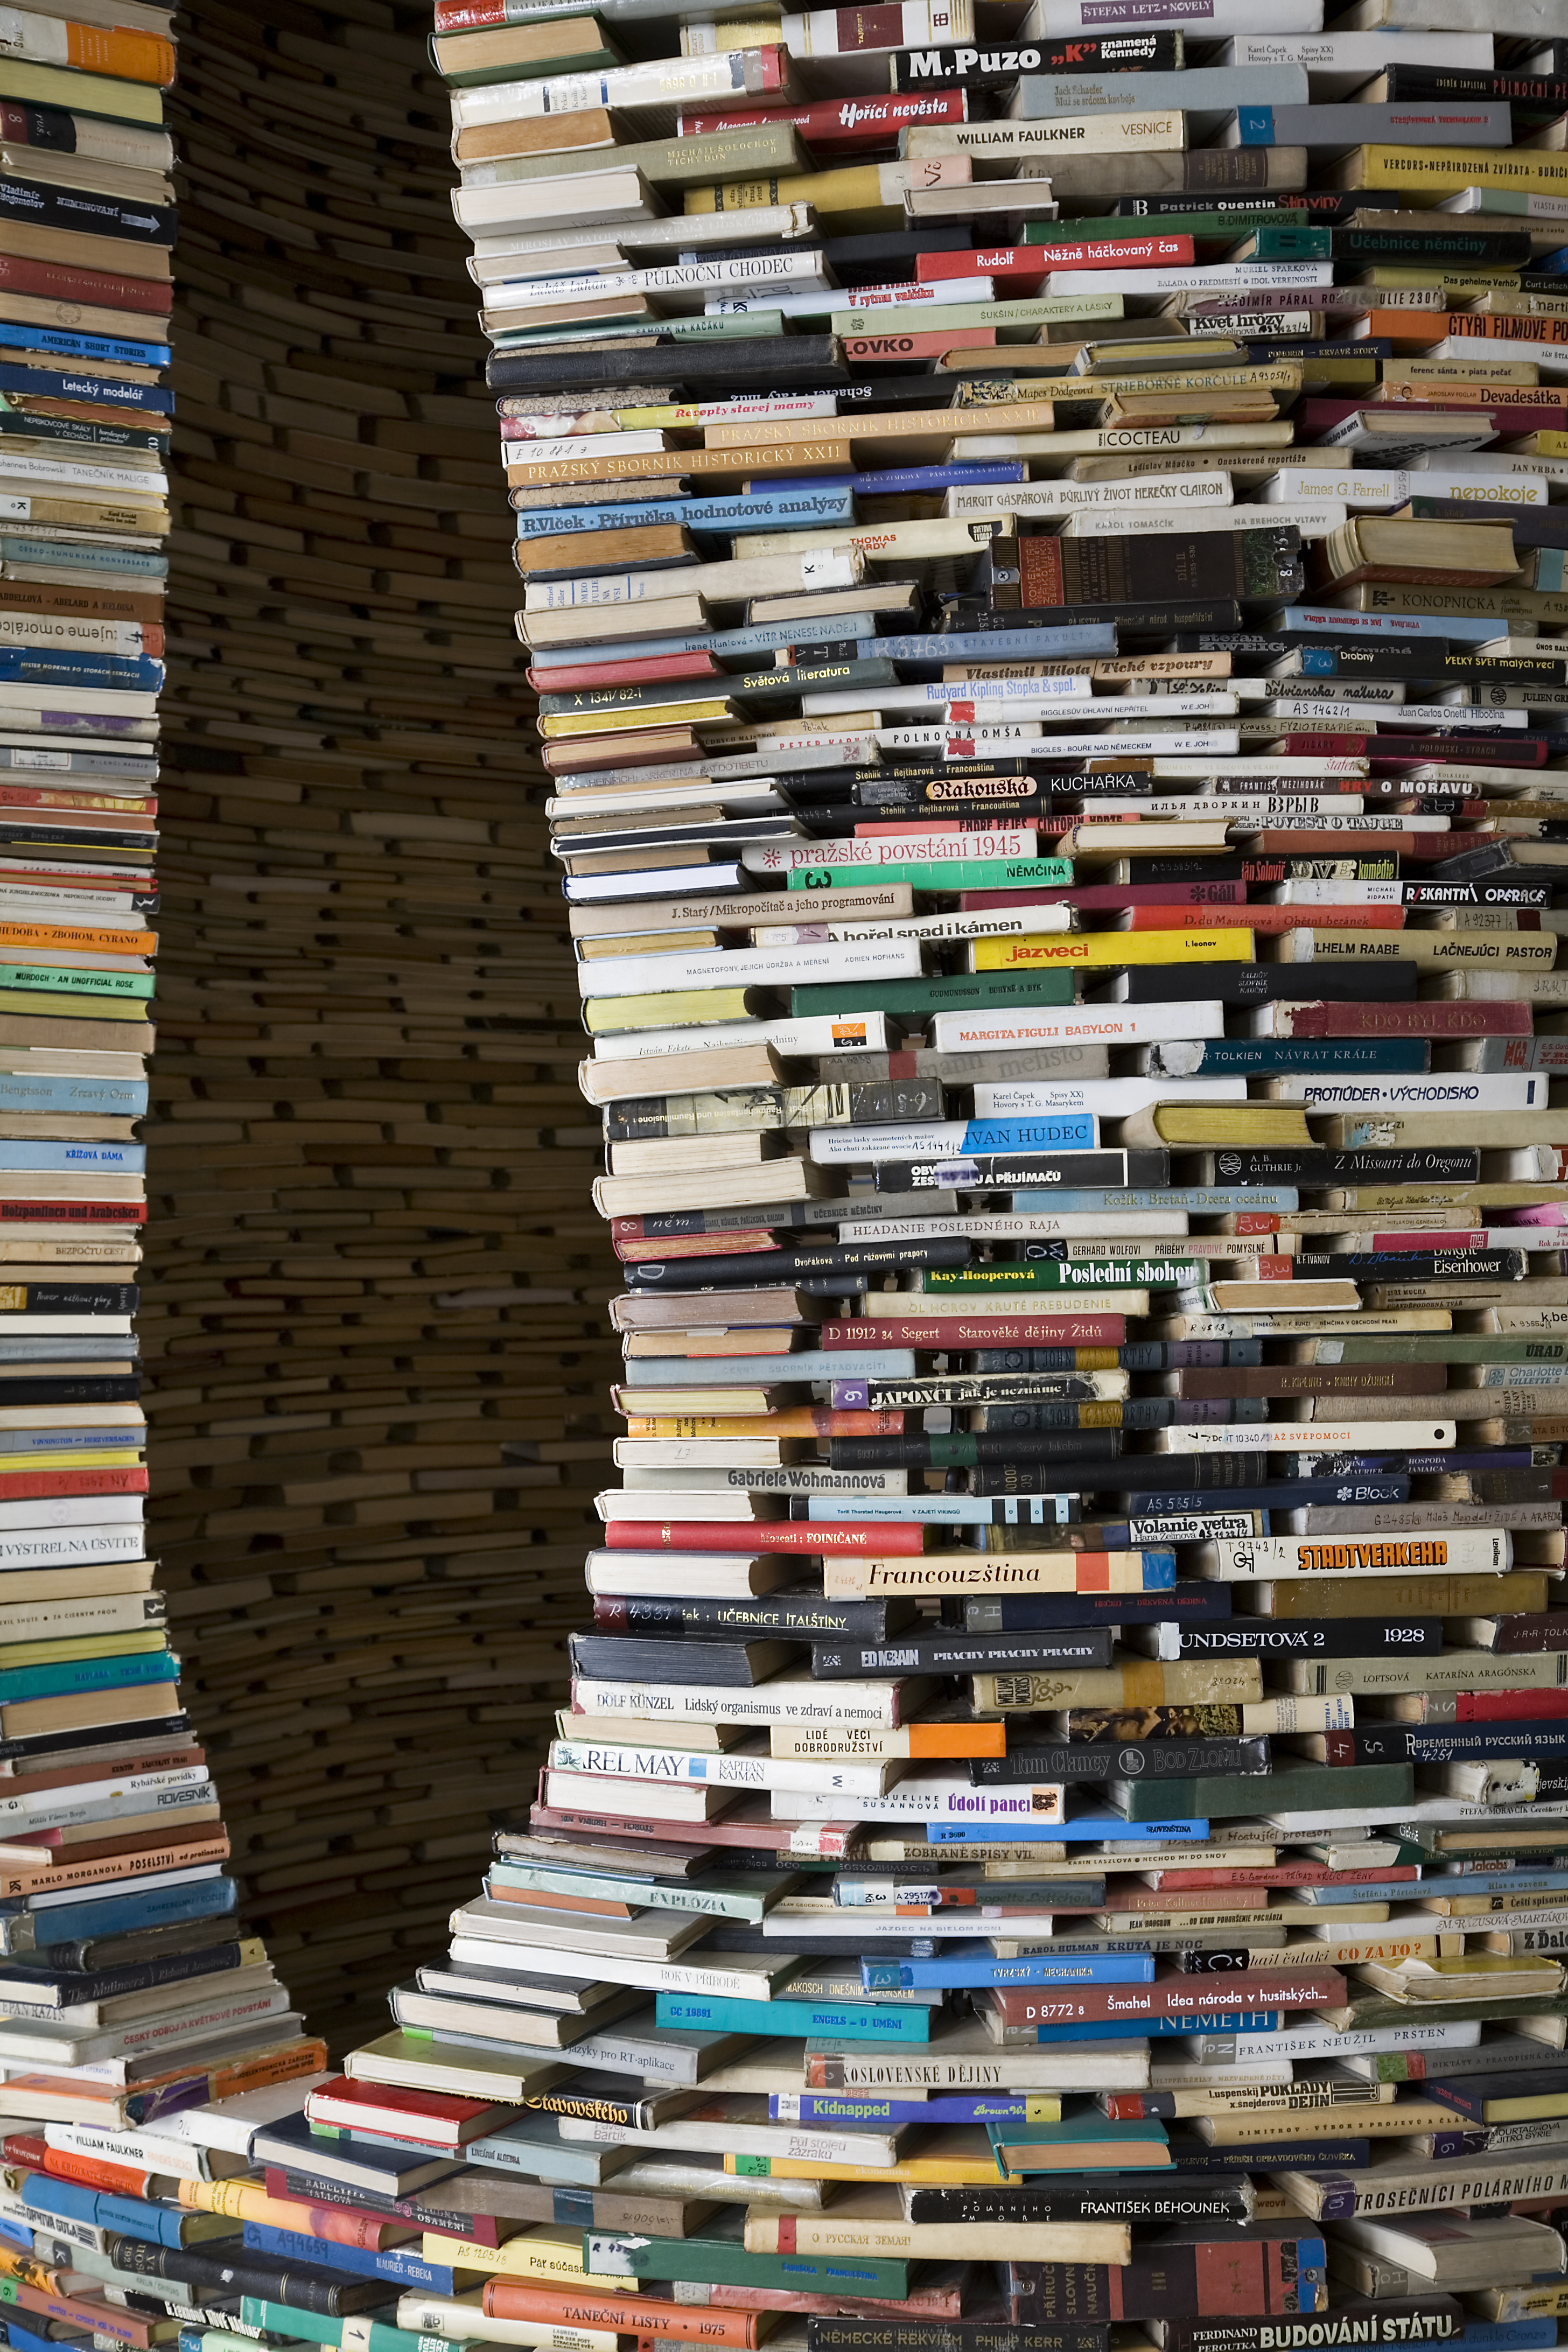 File:A tower of used books - 8451.jpg - Wikimedia Commons